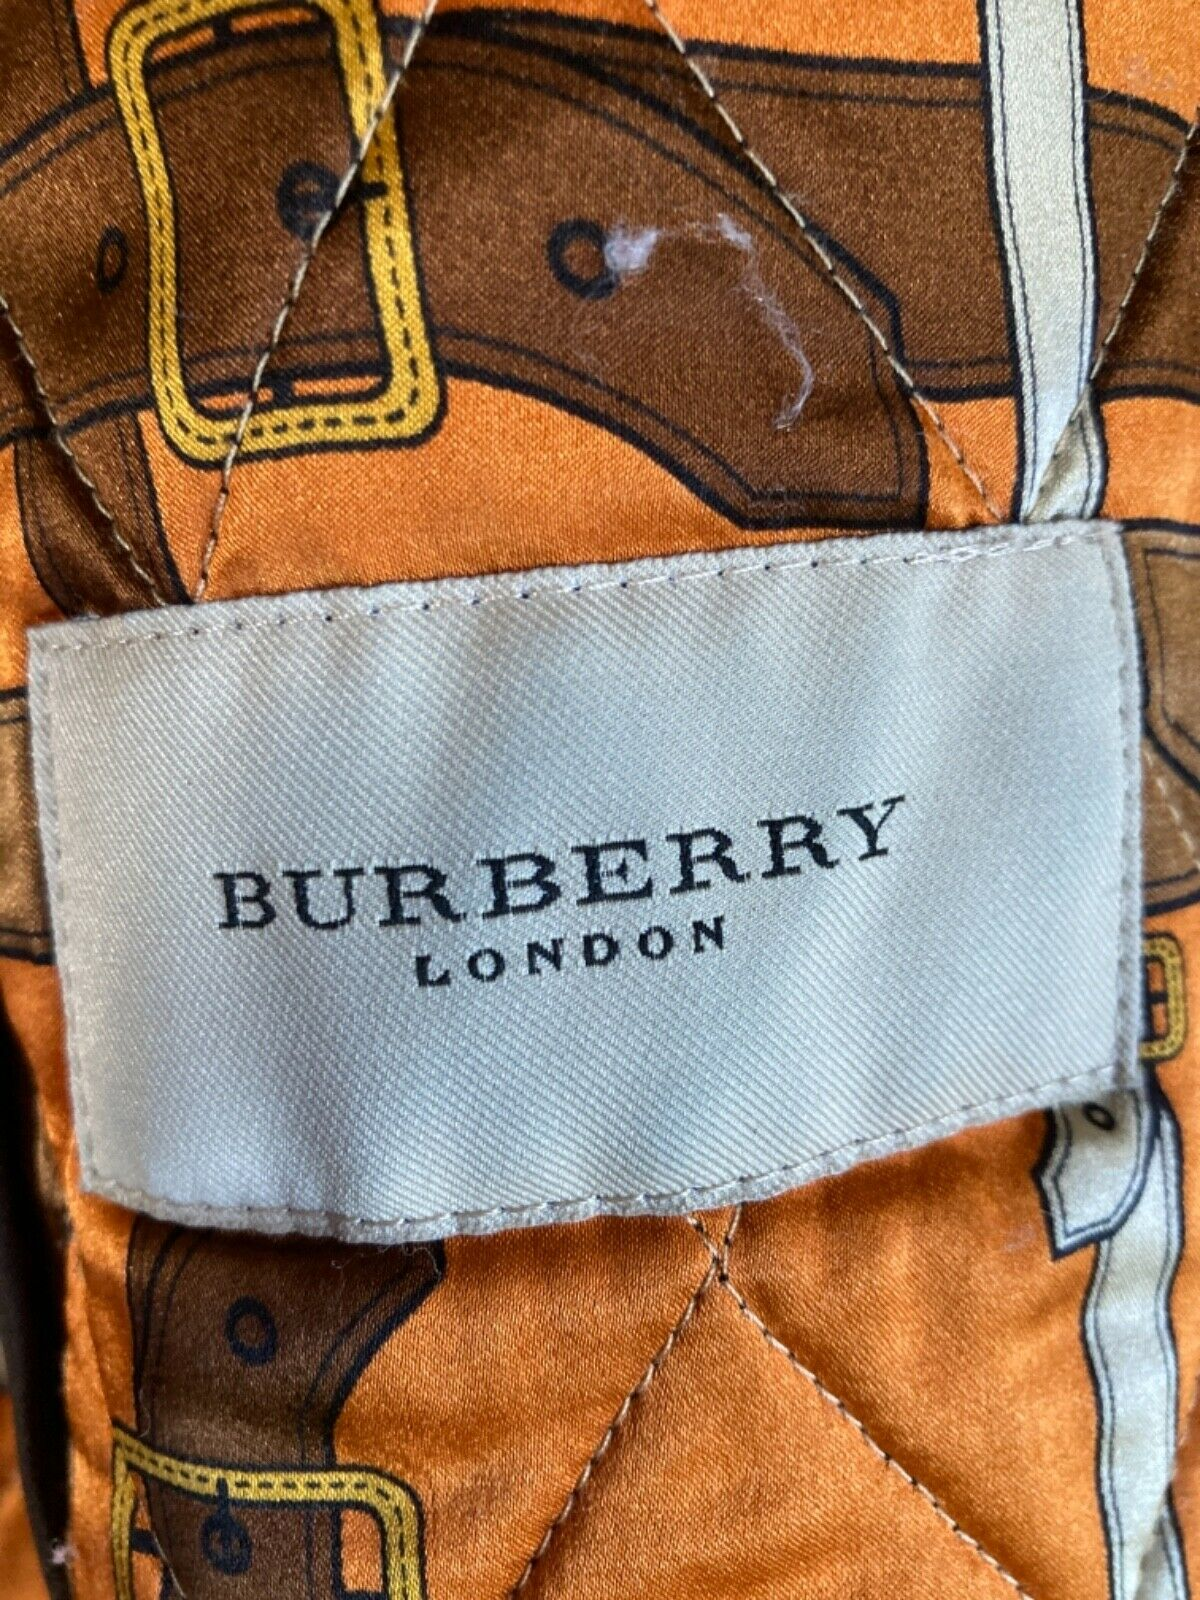 Burberry womens quilted jacket - image 5